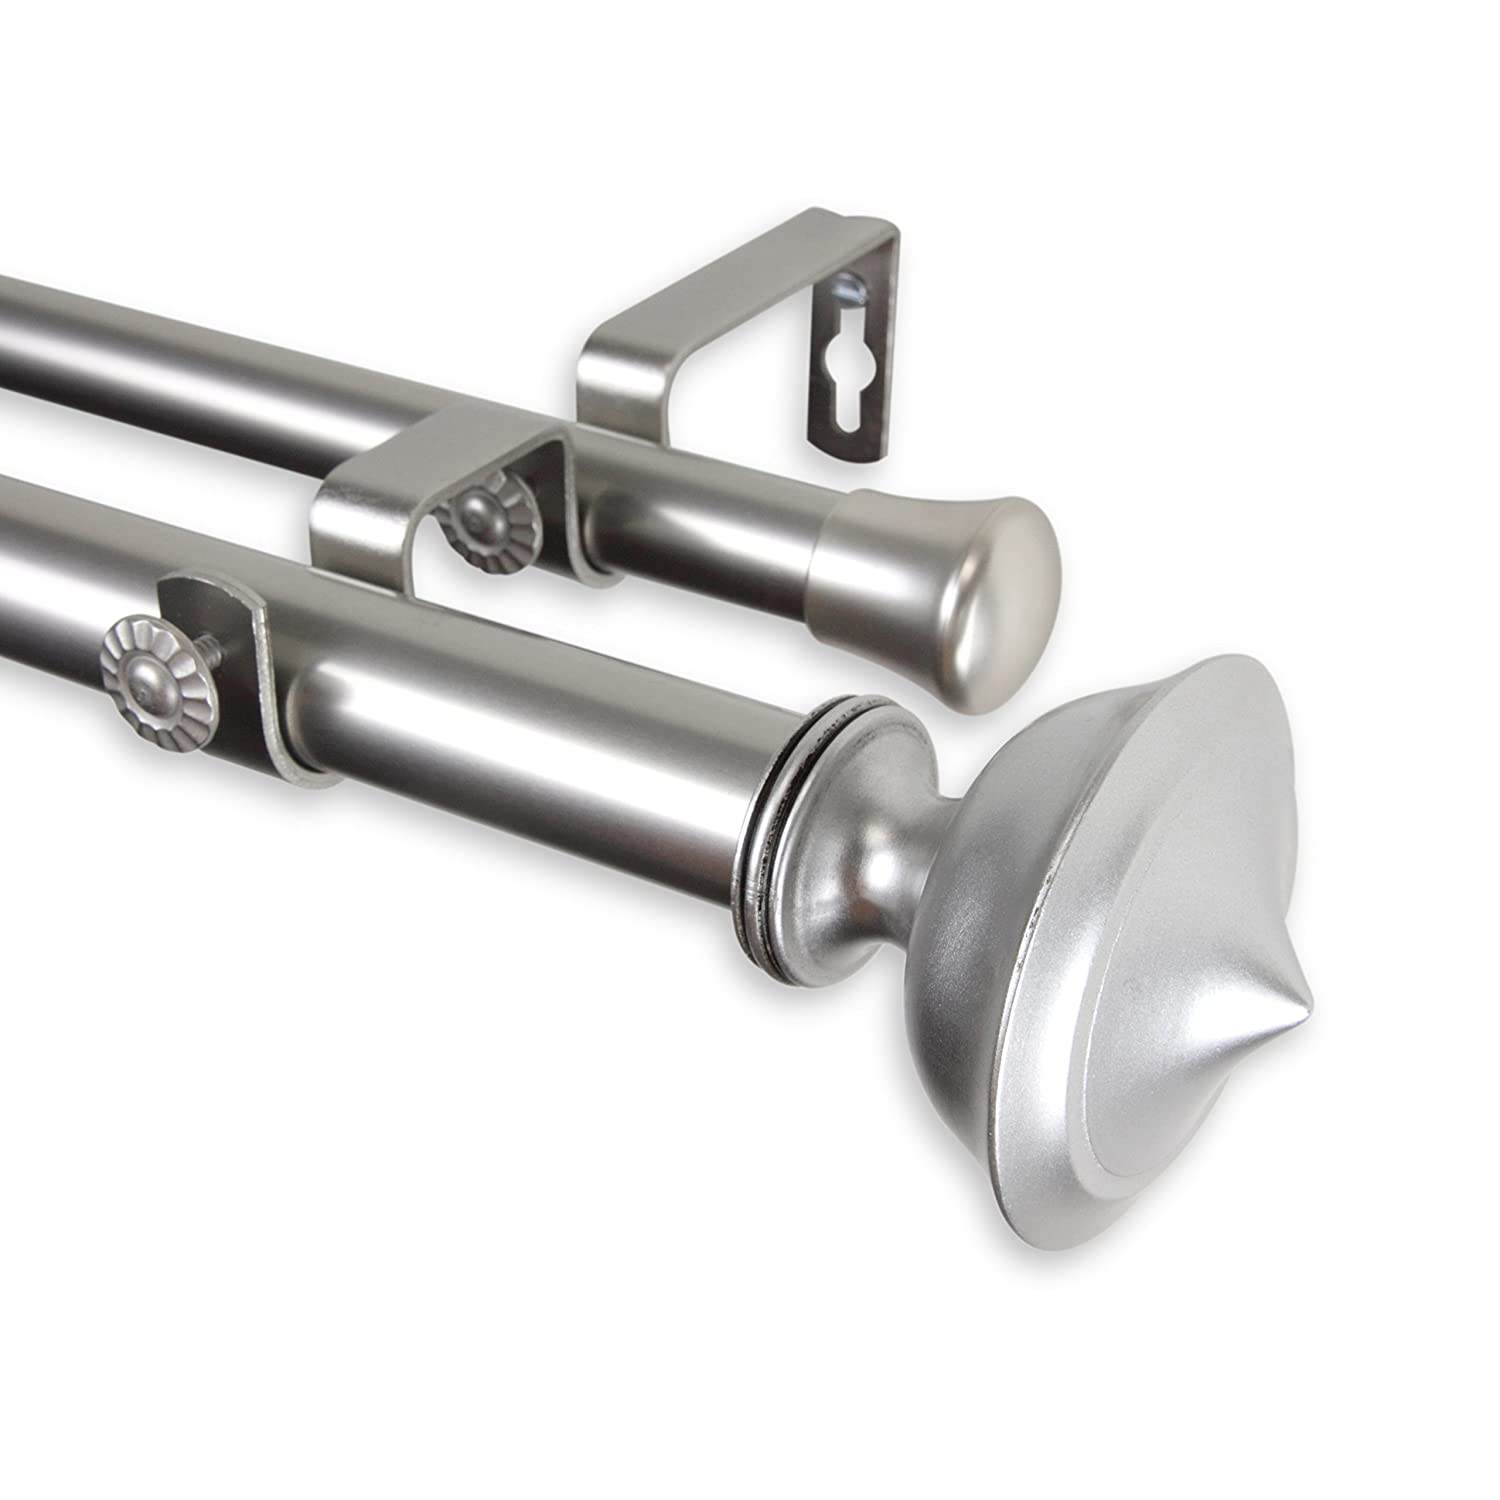 Leopold Double Curtain Rod 120-170 inch - Satin Nickel   B00ZE6A280